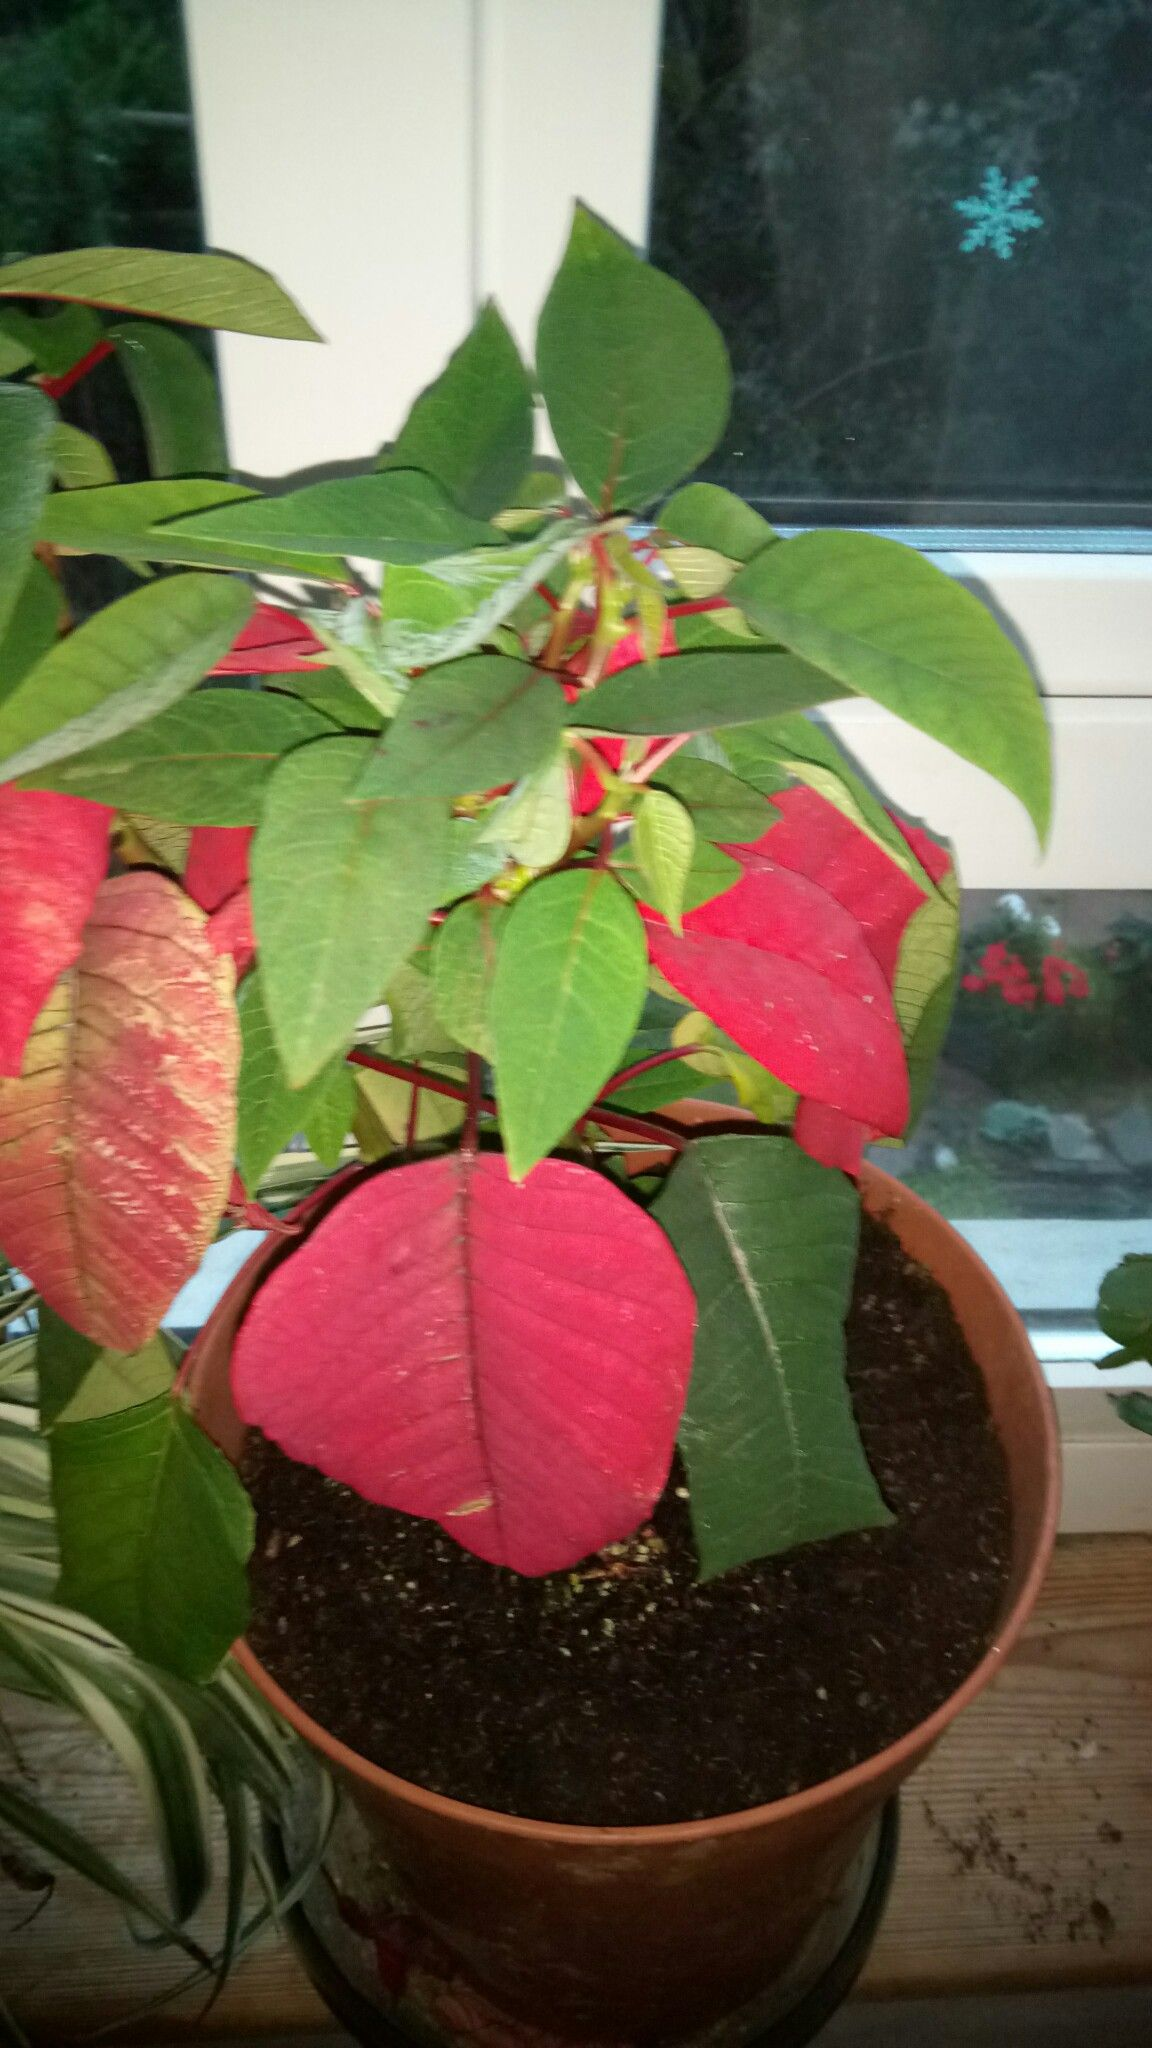 Poinsettia I Have Never Before Had One Survive After Christmas I Found This Dried Out 40p In Tesco Now After Christmas Holidays House Plants After Christmas